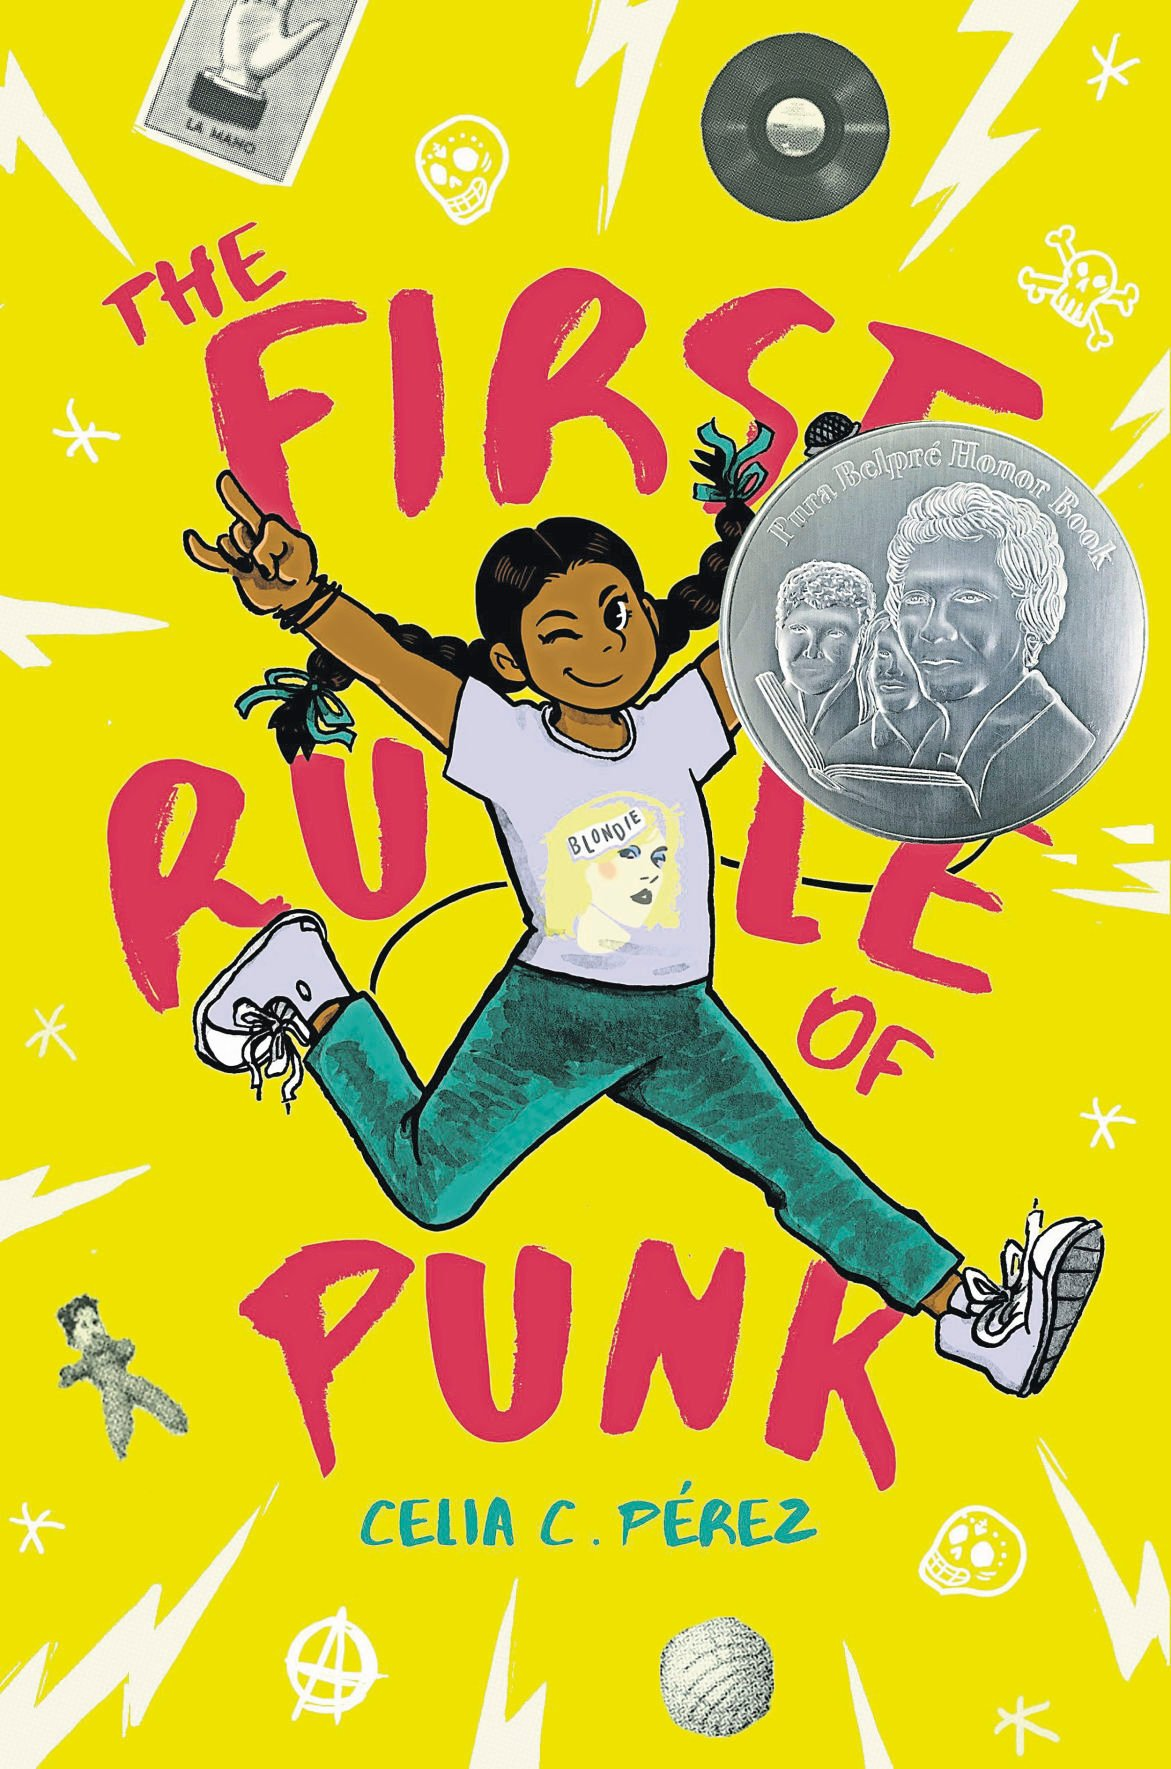 'The First Rule of Punk'